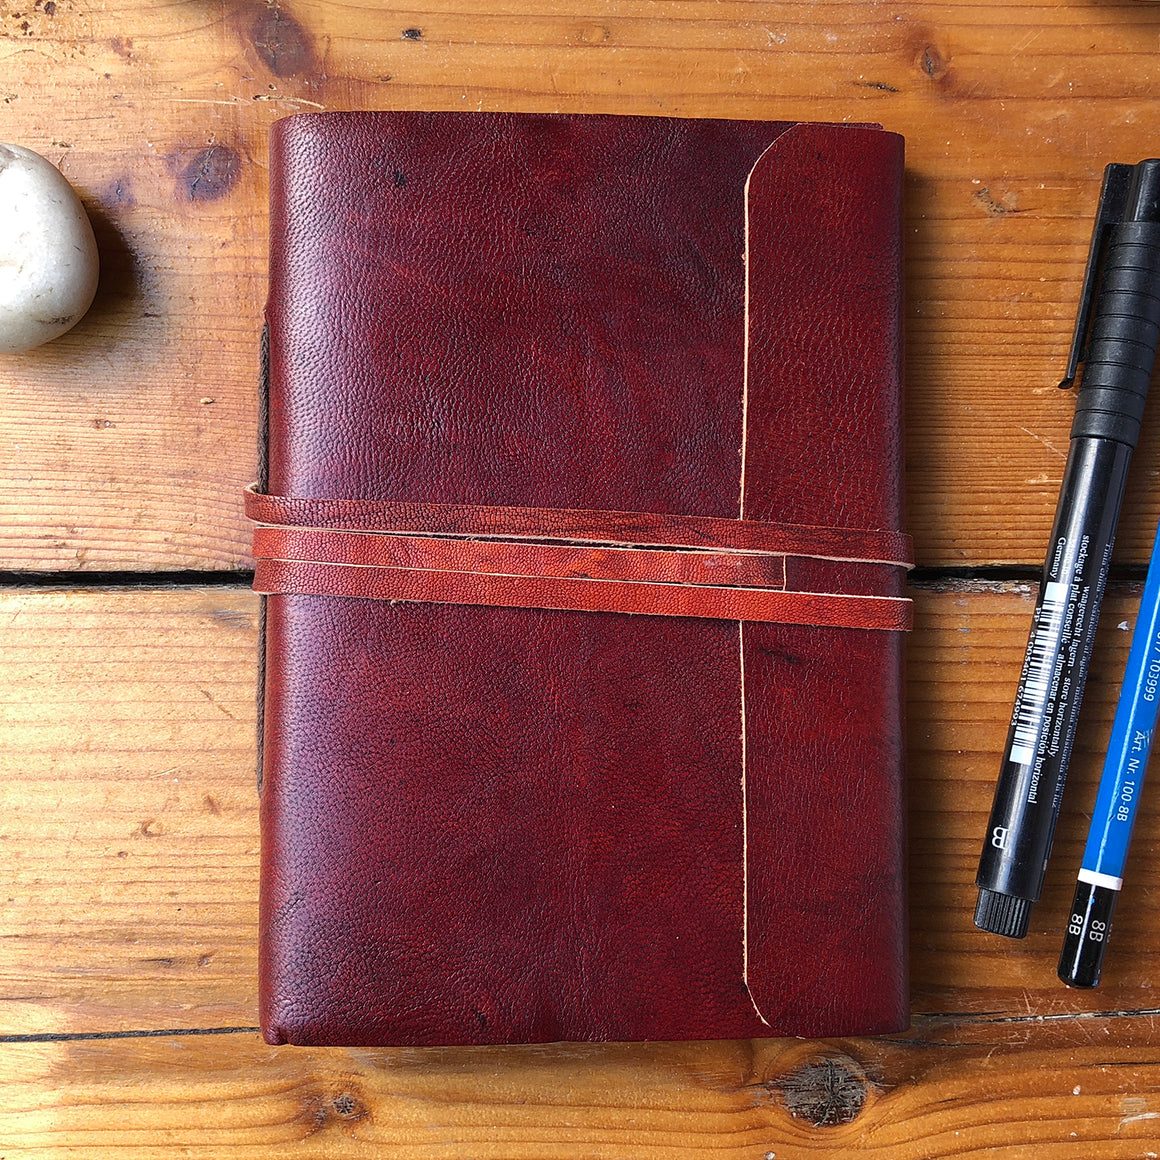 Fair Trade Leather Notebook with Folding Flap and Tie (2 Sizes) / Handmade Indian Leather Diary / Sketchbook / Journal - Large & Small Front Covers